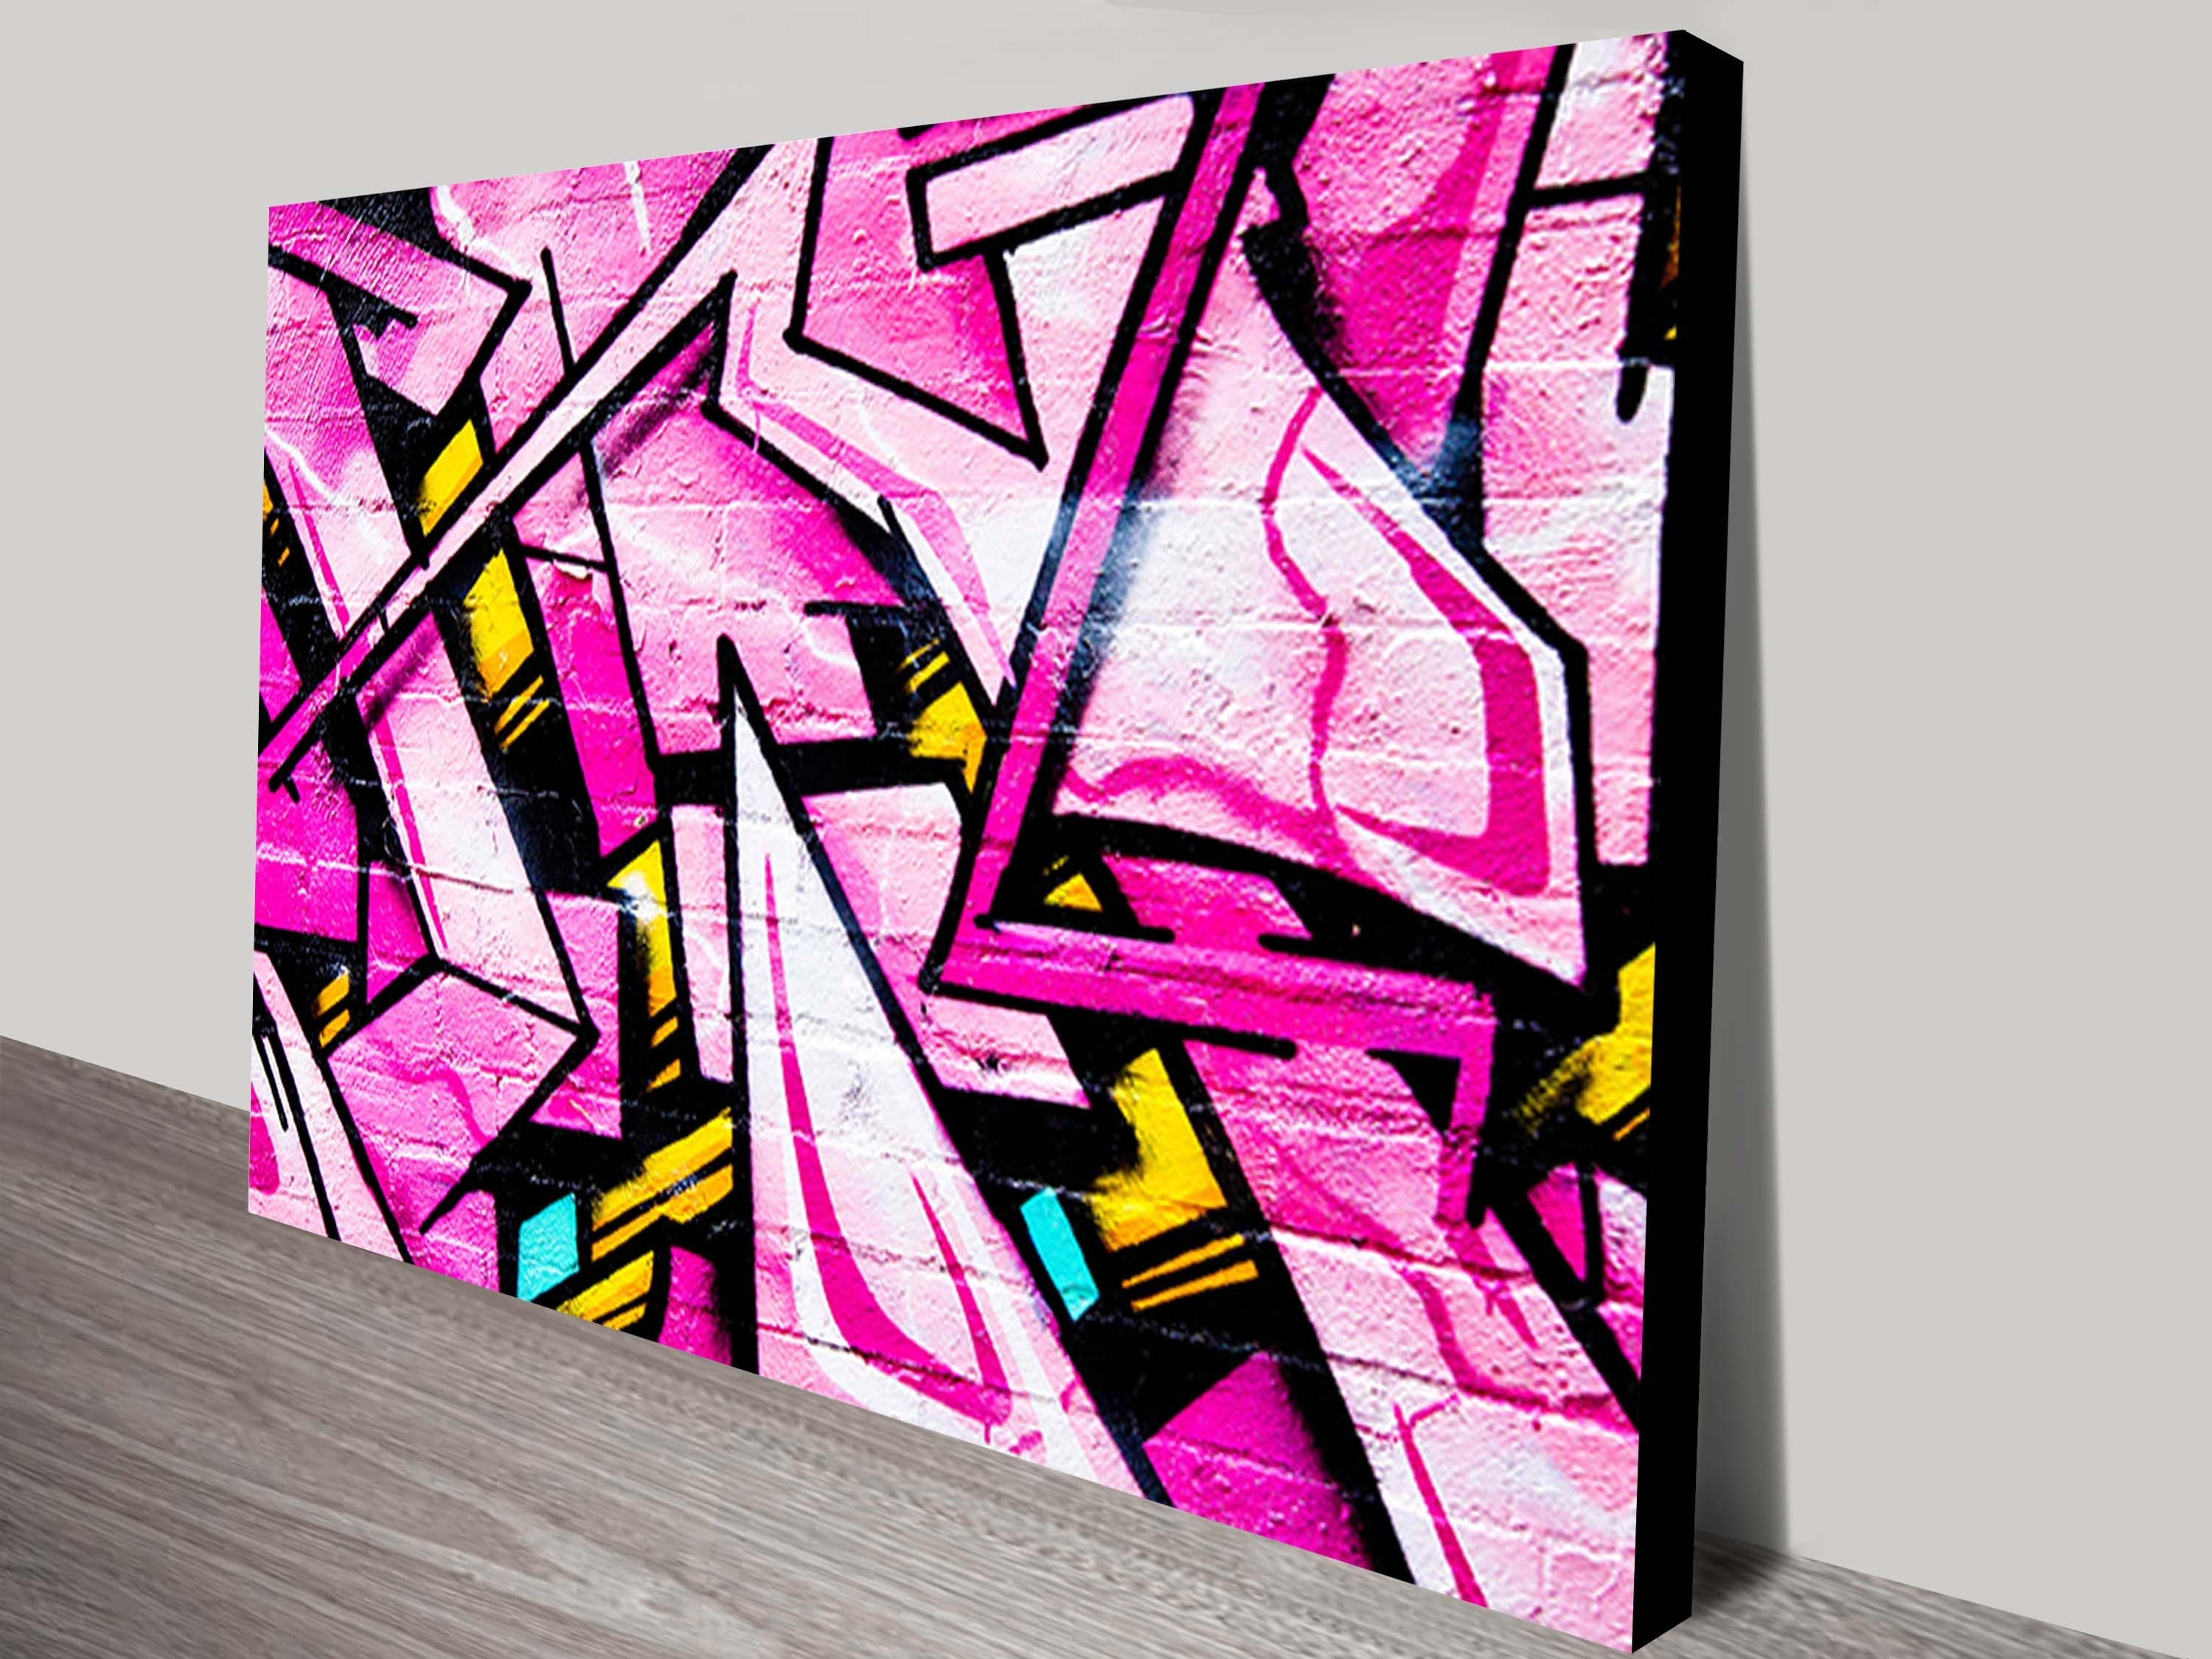 Graffiti Street Art On Canvas Brisbane Australia In Most Recent Brisbane Abstract Wall Art (Gallery 14 of 20)